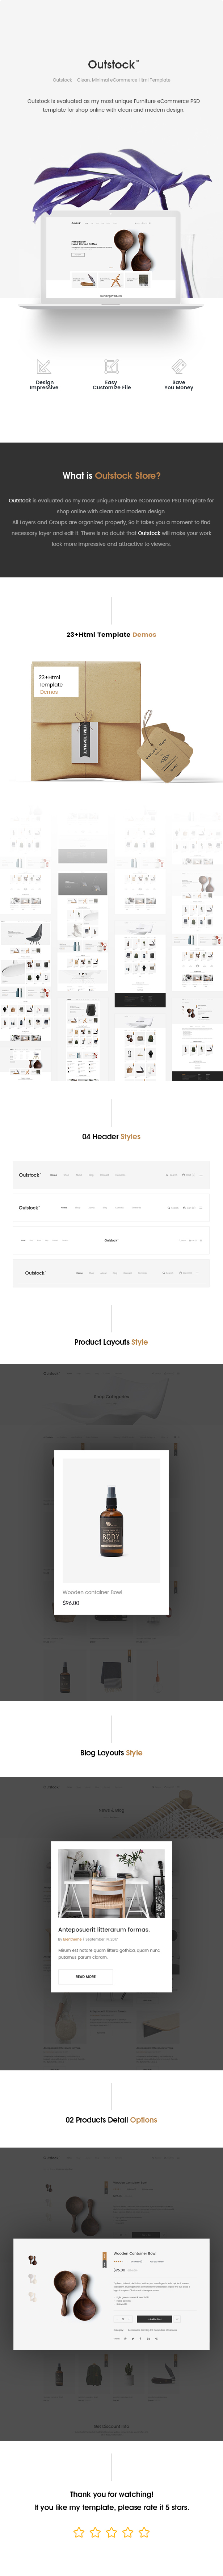 outstock html template